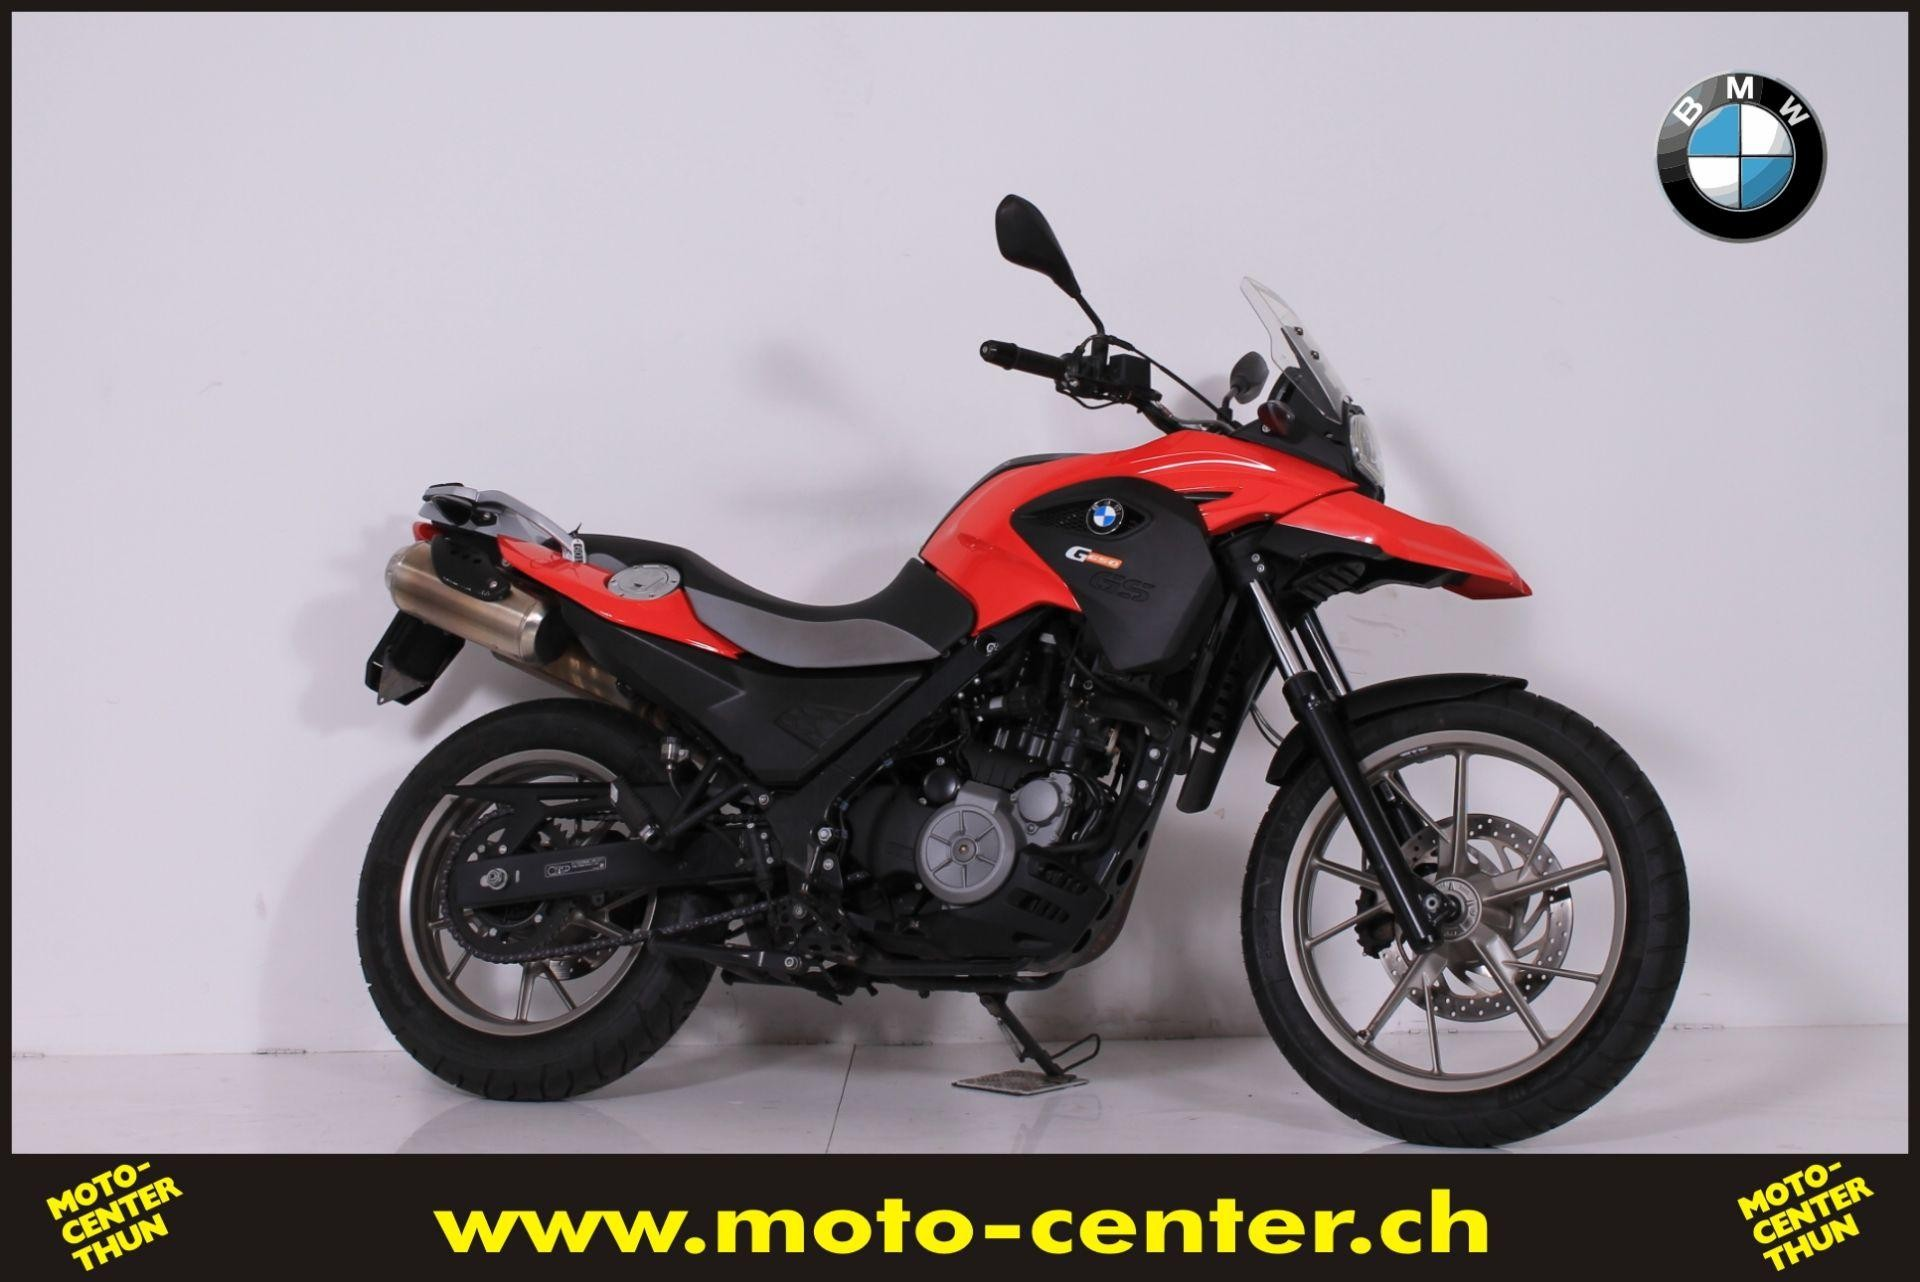 bmw g 650 gs mit tieferlegung moto center thun steffisburg occasion. Black Bedroom Furniture Sets. Home Design Ideas